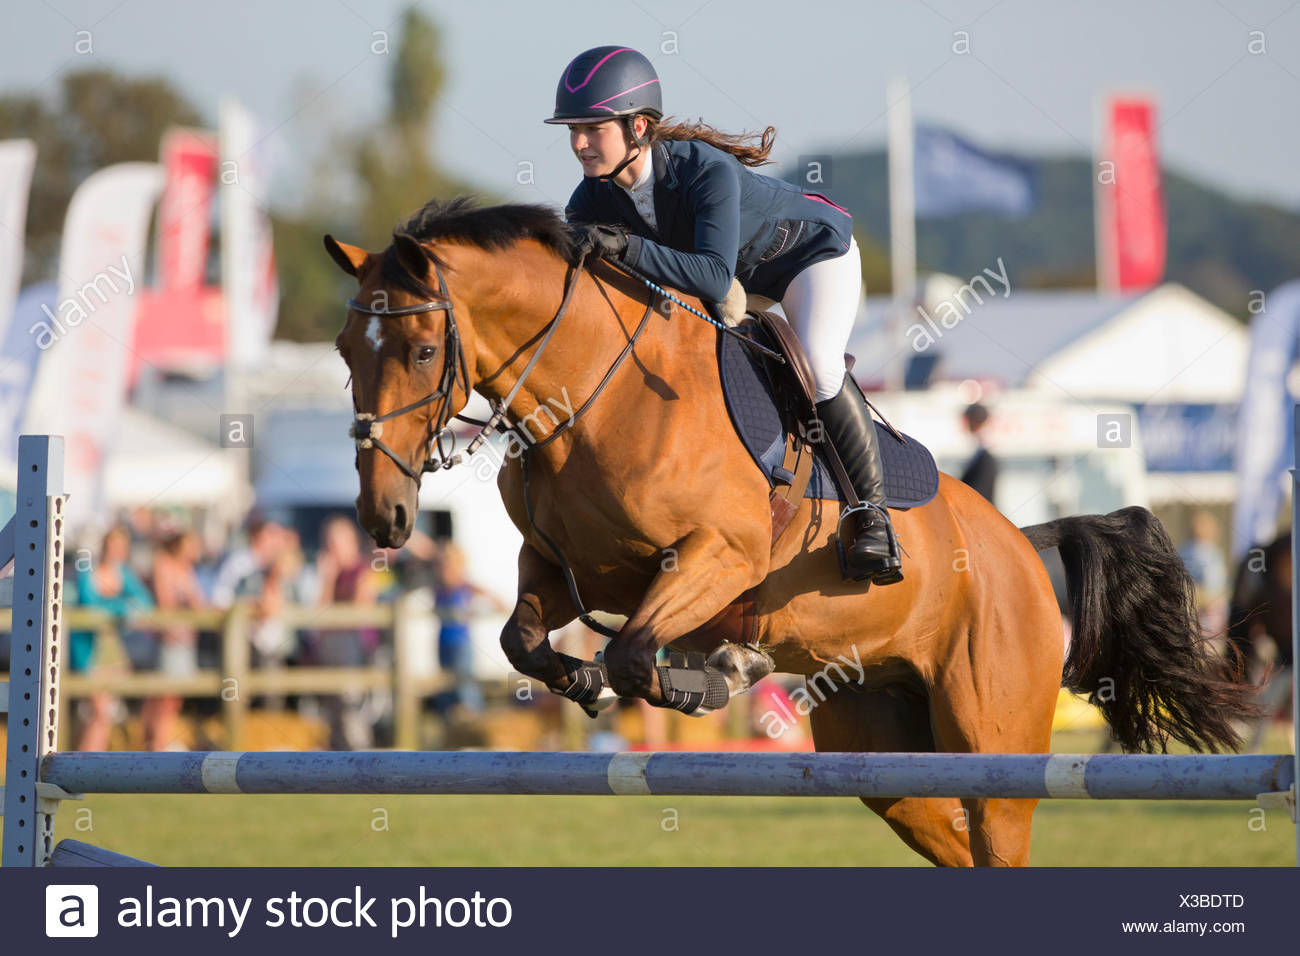 Female Showjumper clearing jump on horse - Stock Image